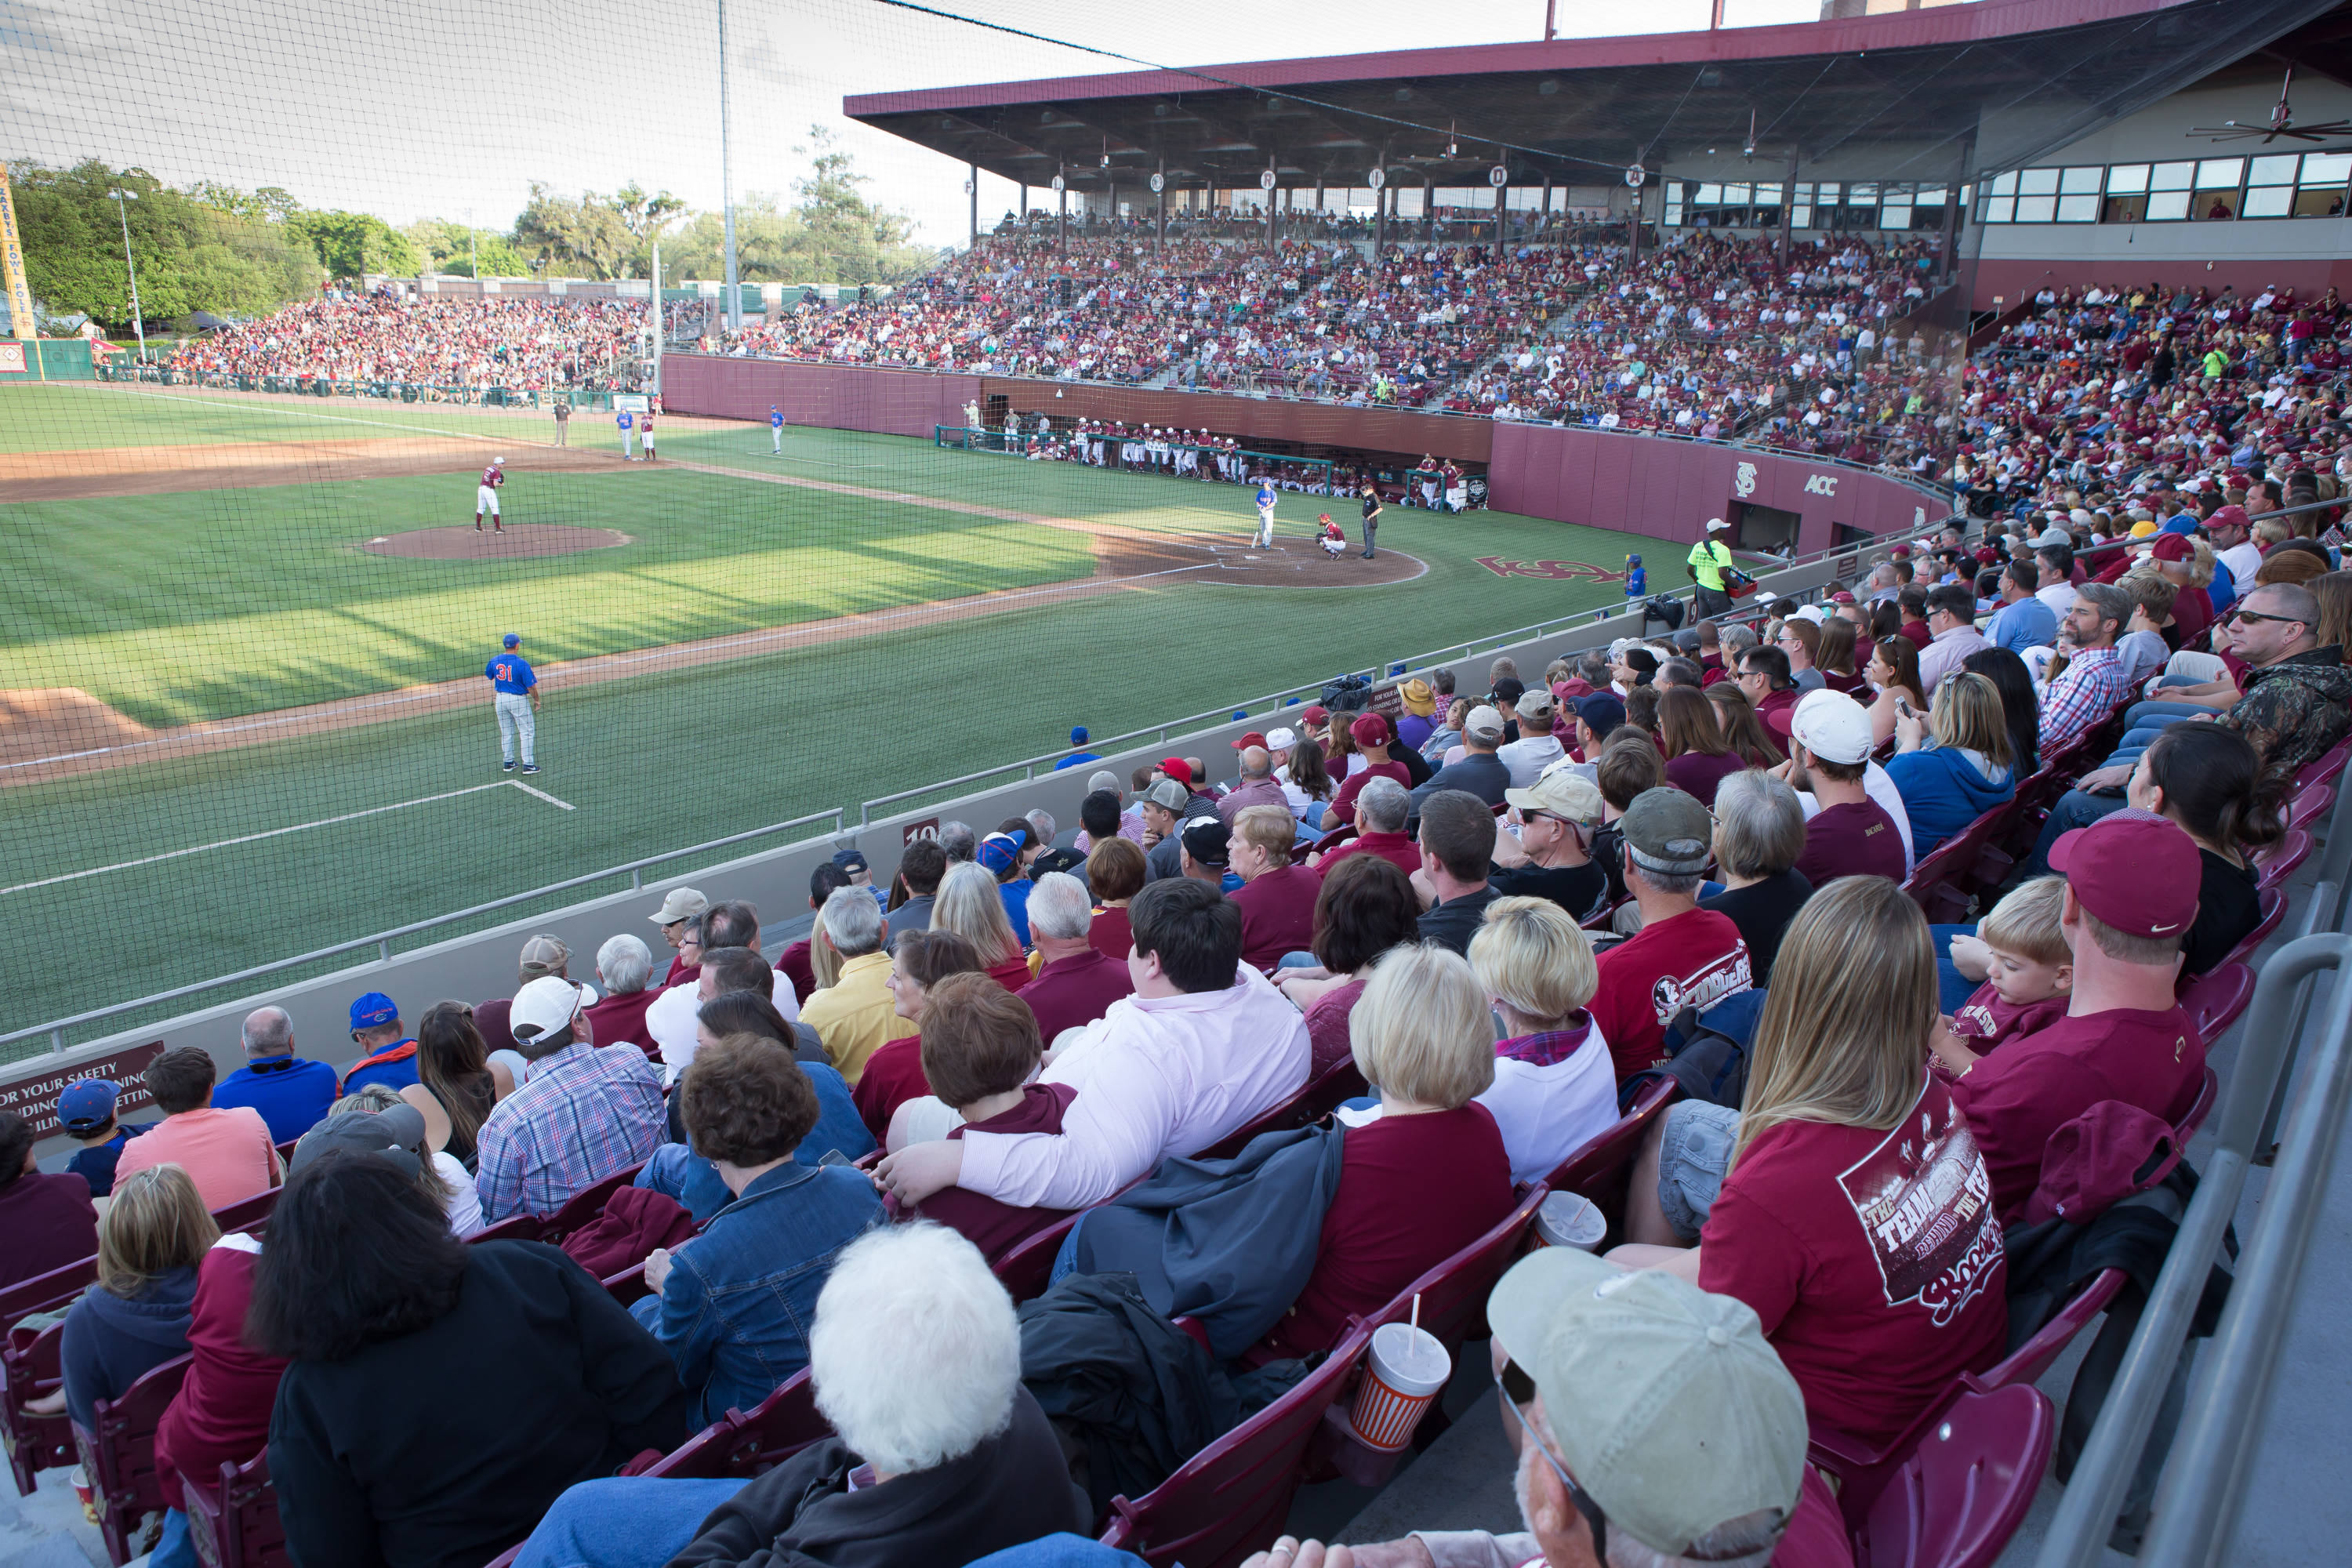 Attendance at the game was 6514.